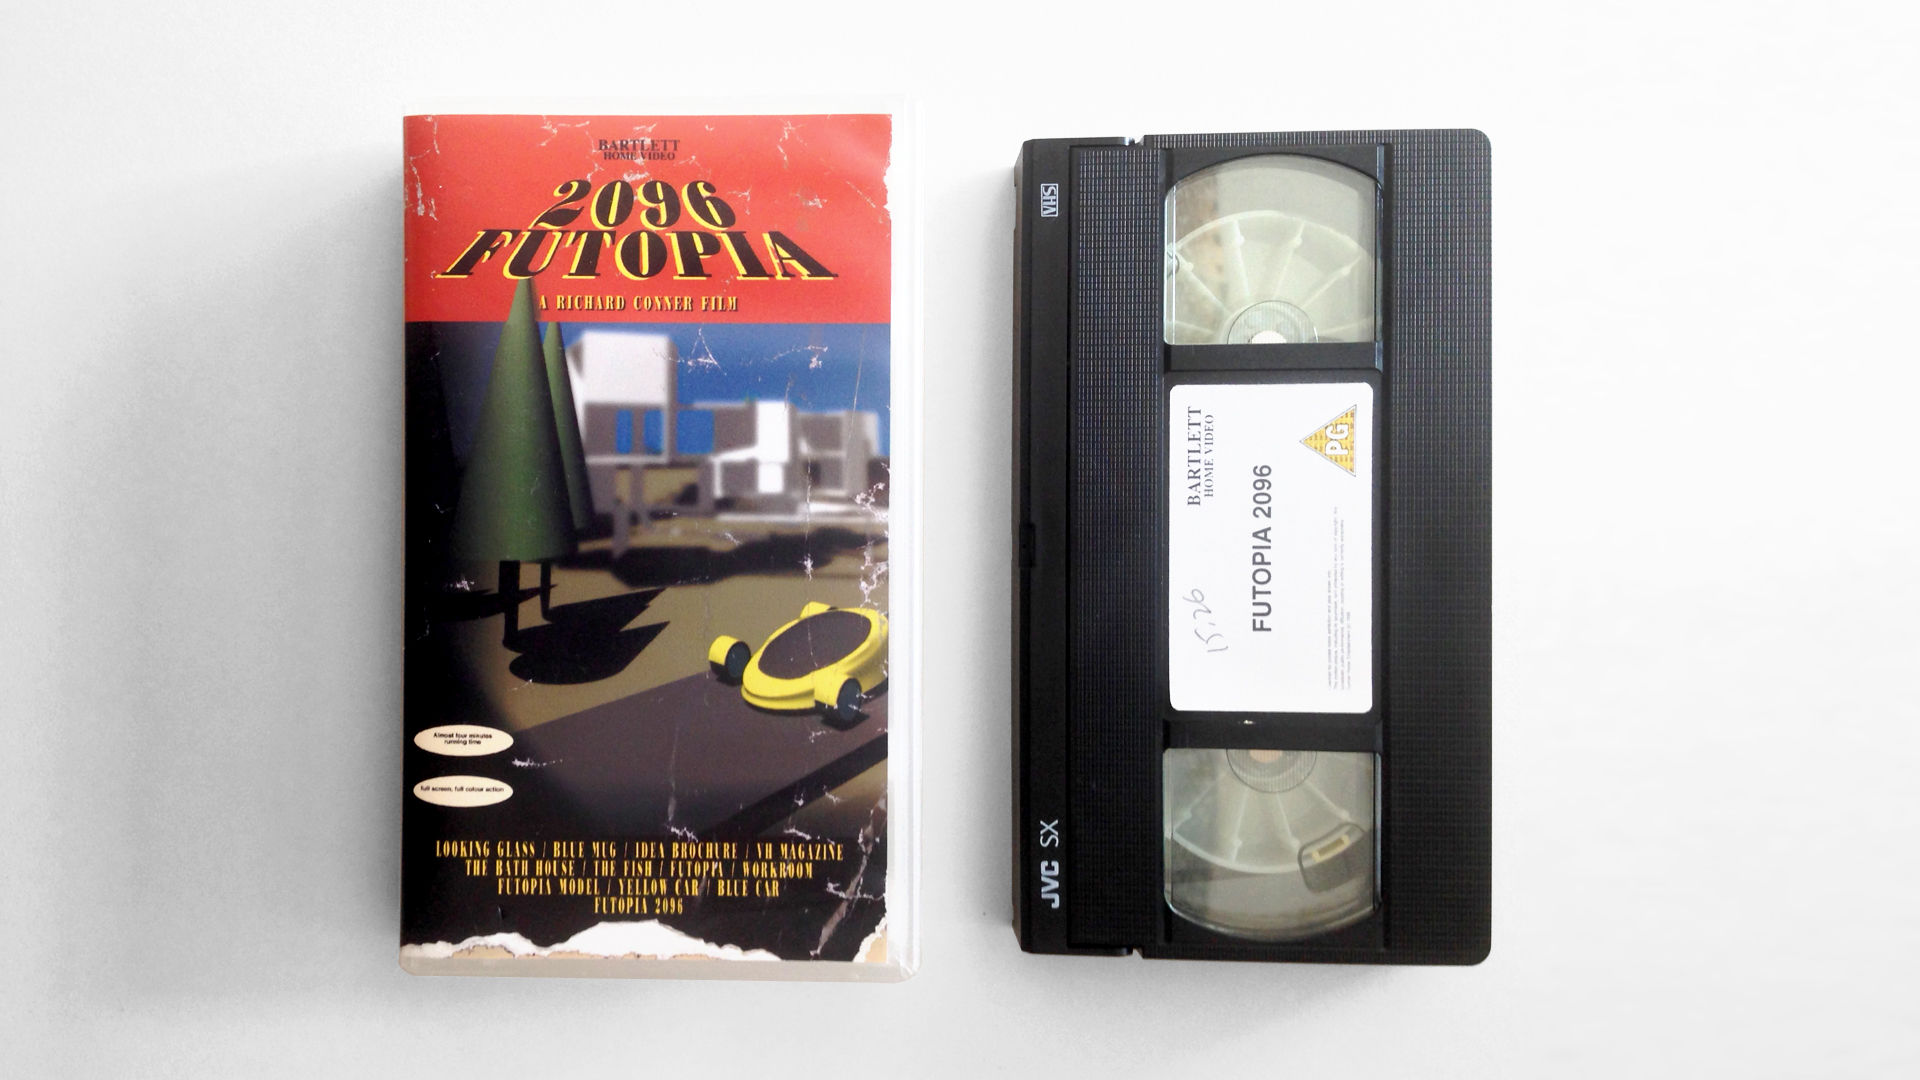 Richard Conner Architect Artist Futopia 2096 The Future of Home Video Cassette 2000px 80PC.jpg